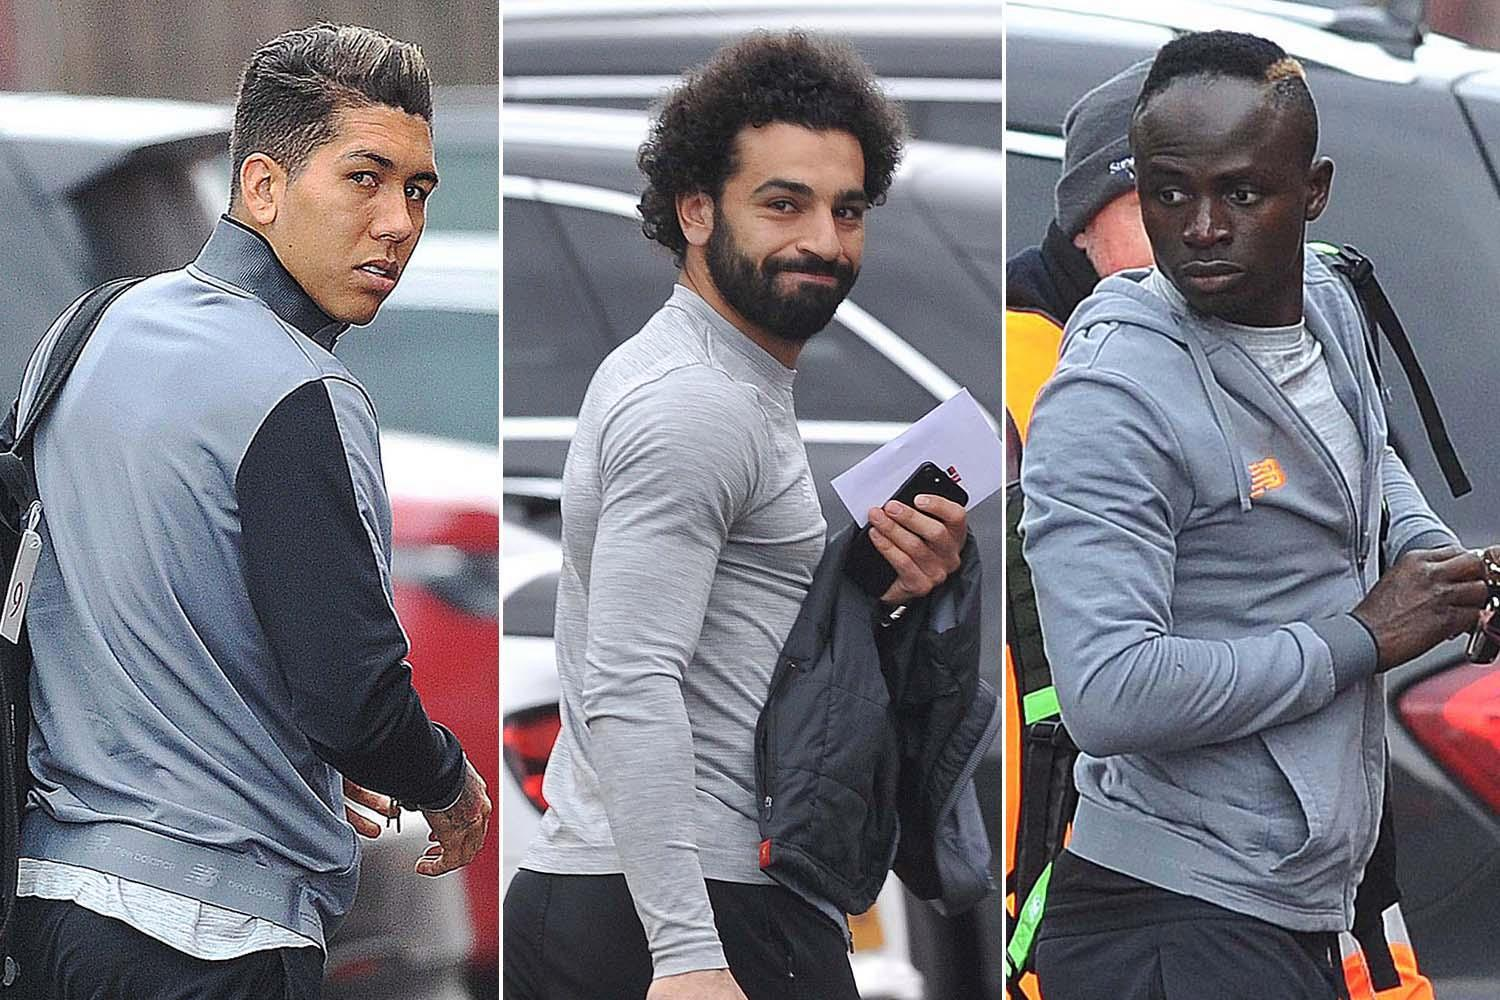 Liverpool set to start Mo Salah, Sadio Mane and Roberto Firmino against Porto in the Champions League… despite already leading 5-0 from the first-leg